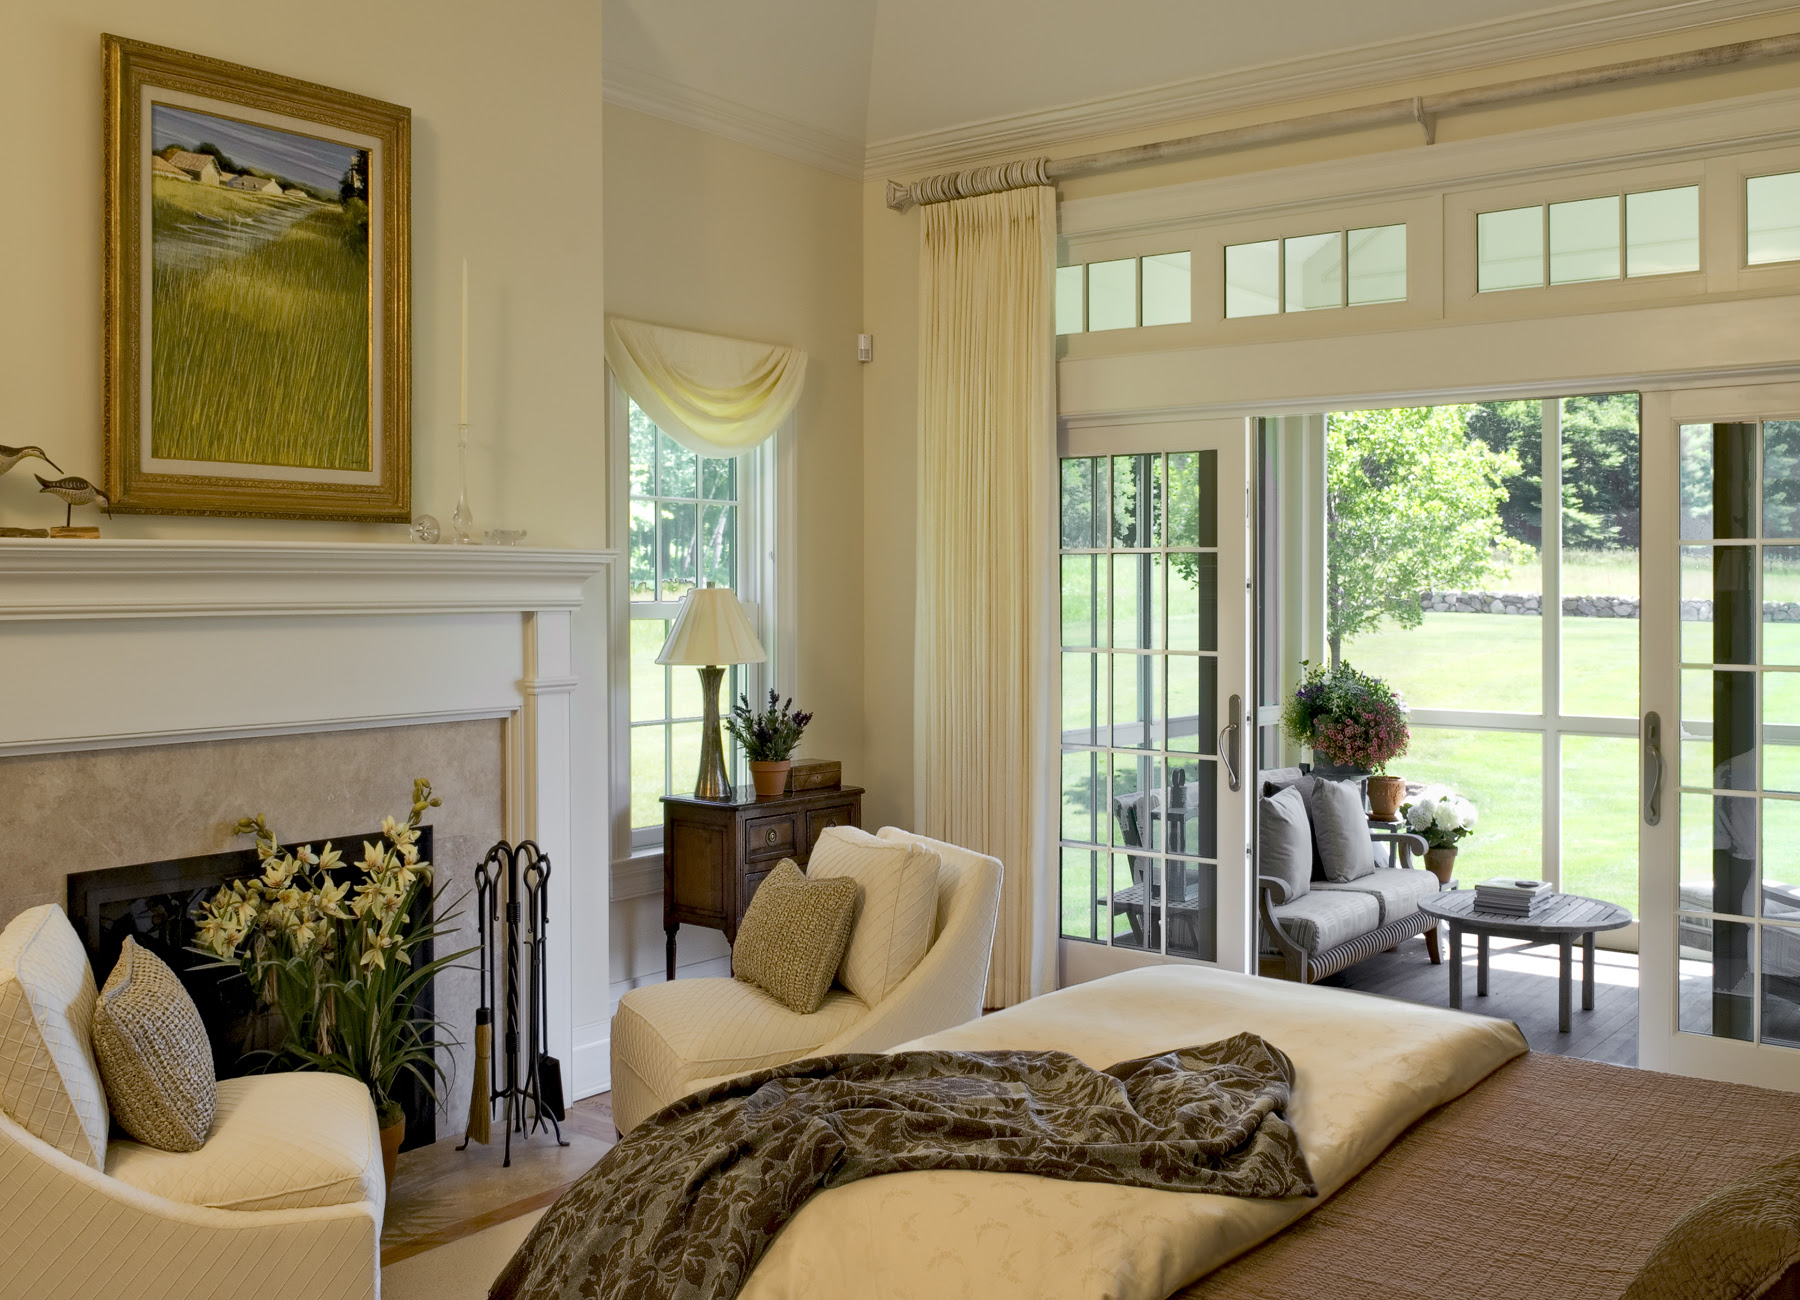 5 Additions That Especially Add Value to a Home(Revisited